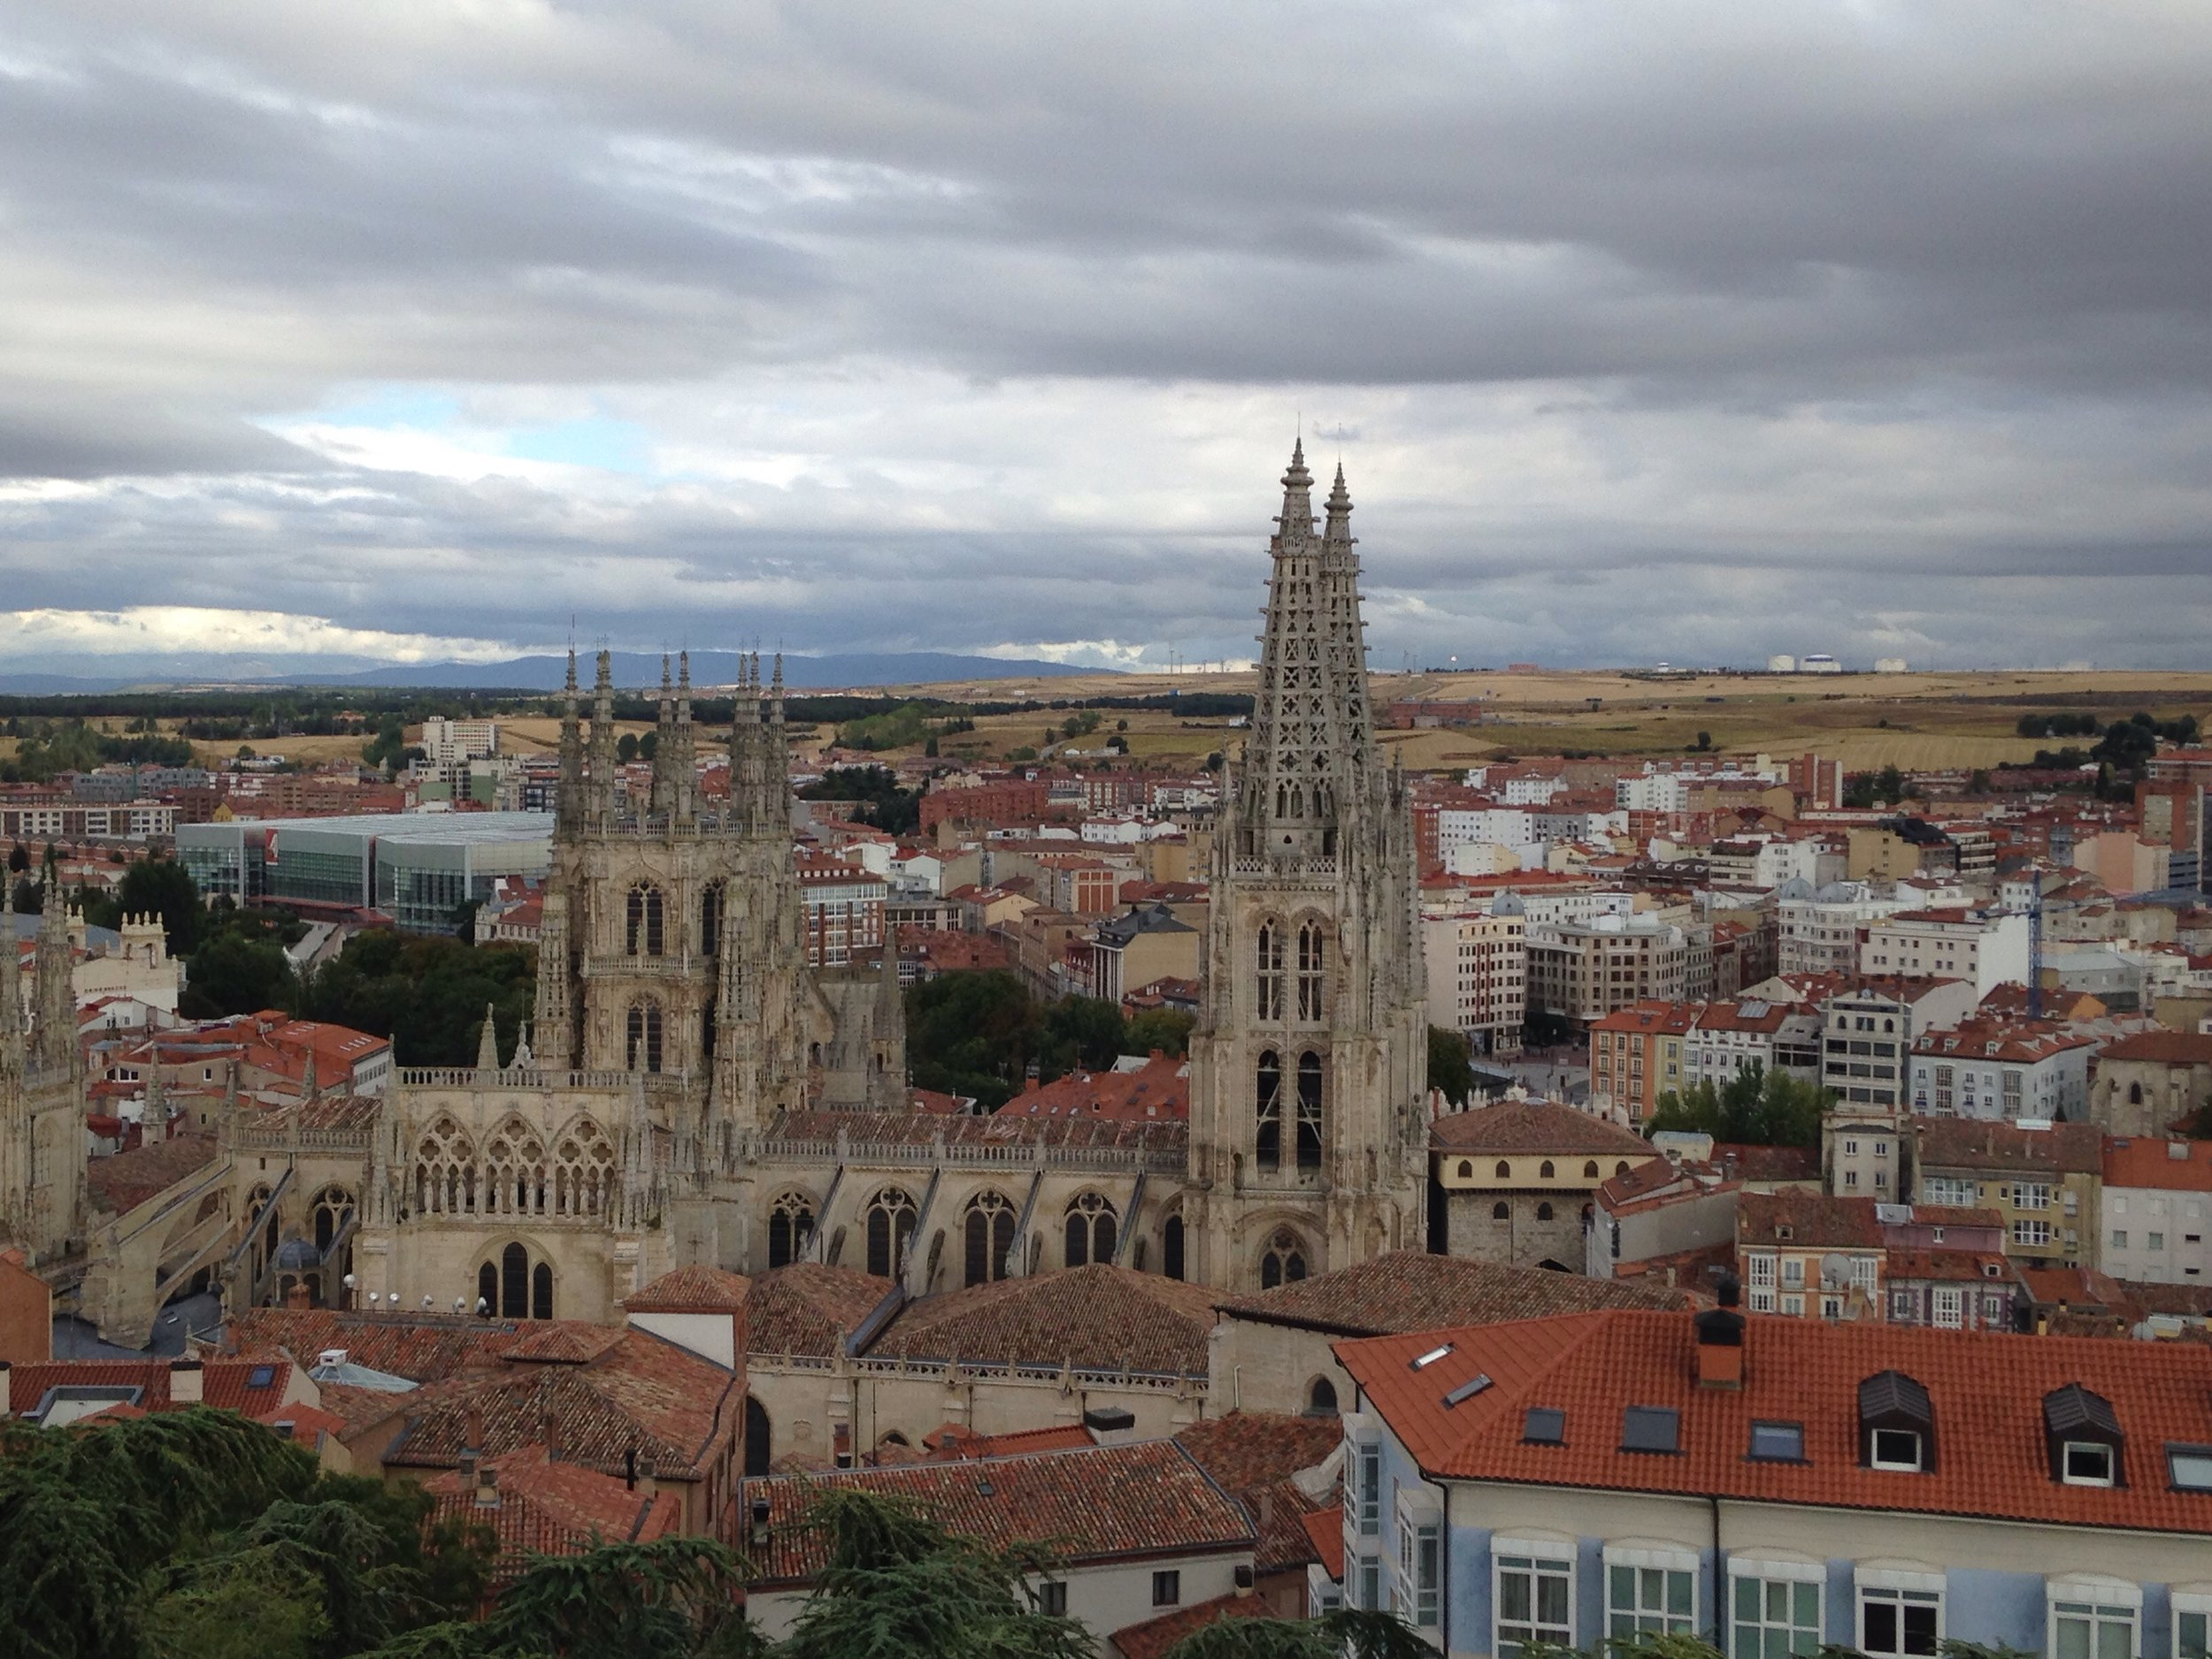 The beautiful Burgos cathedral